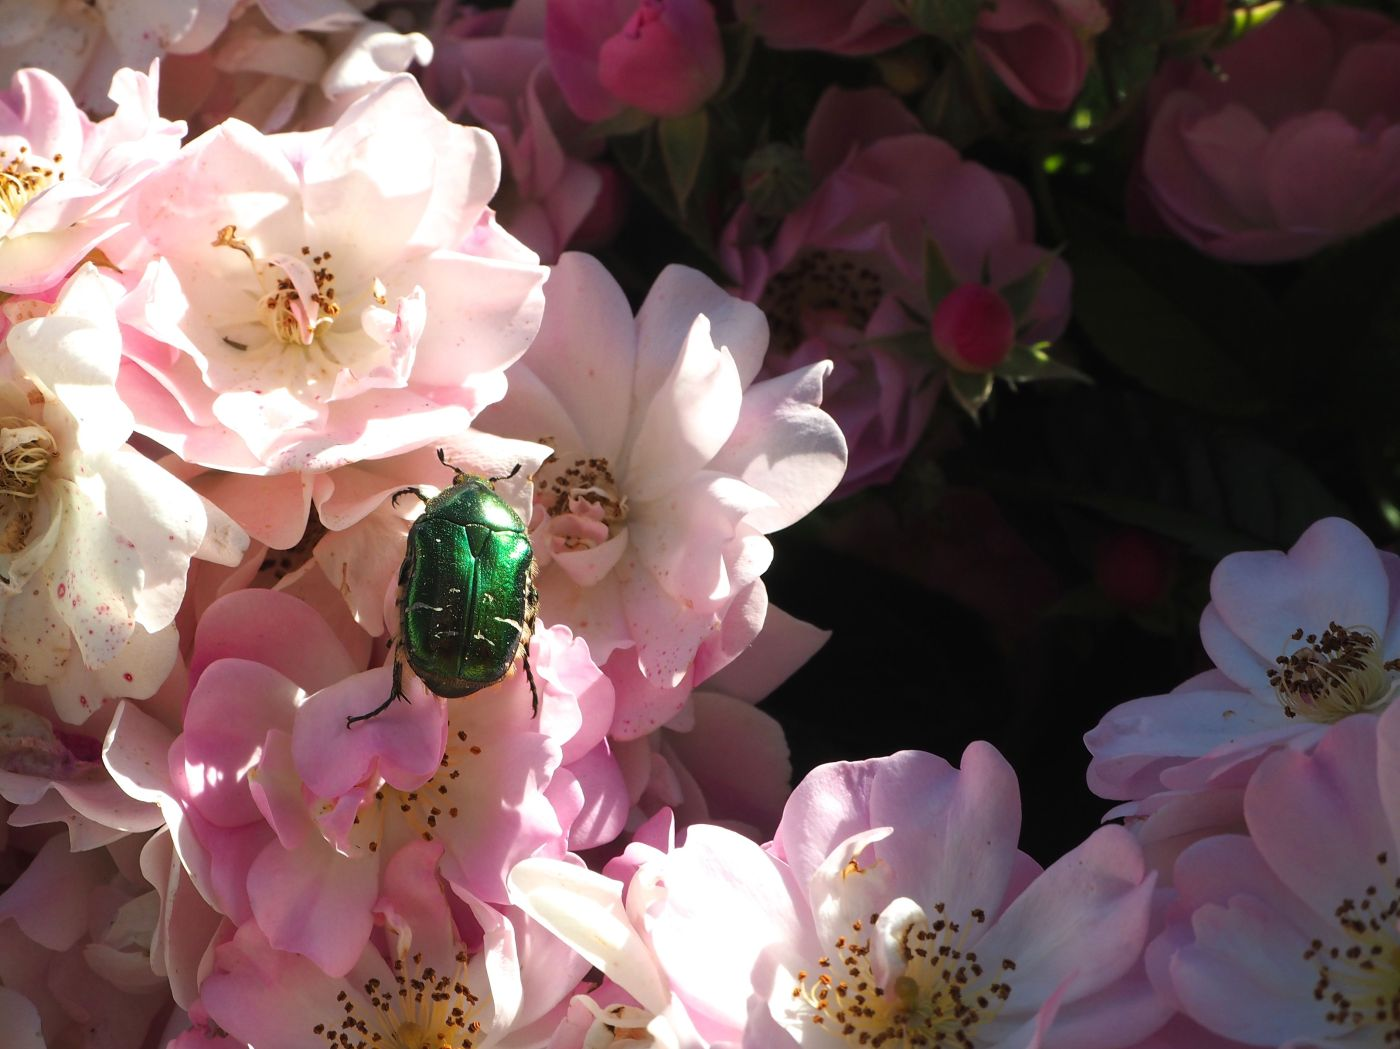 rose chafer beetle & rose apple blossom